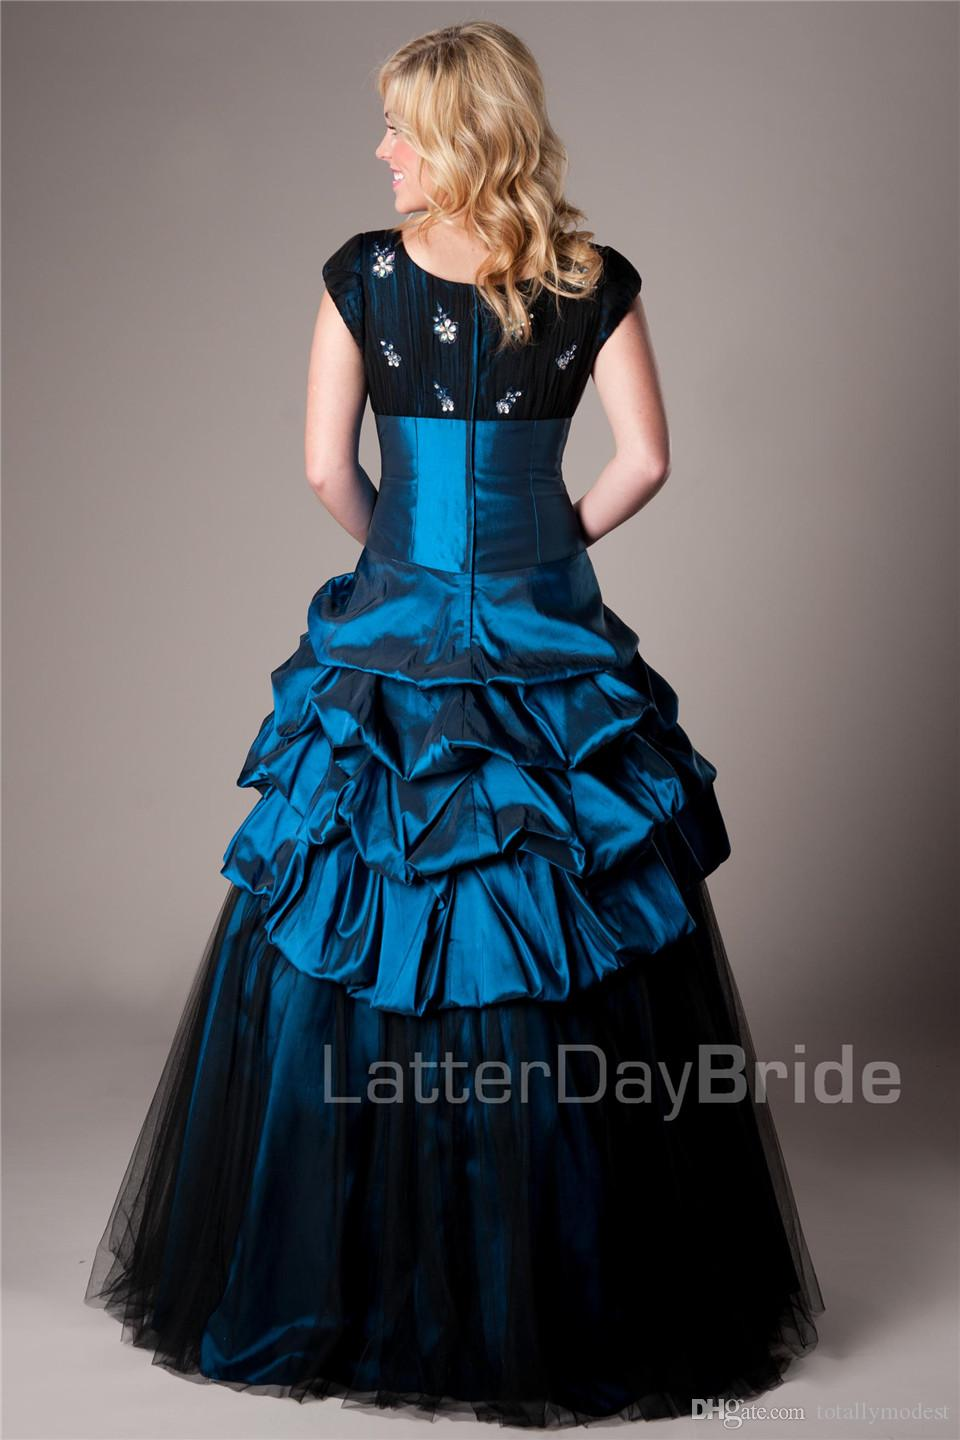 Royal Blue Black Long Ball Gown Modest Prom Dresses With Cap Sleeves Vintage Short Sleeves Taffeta Seniors Puffy Prom Party Dresses